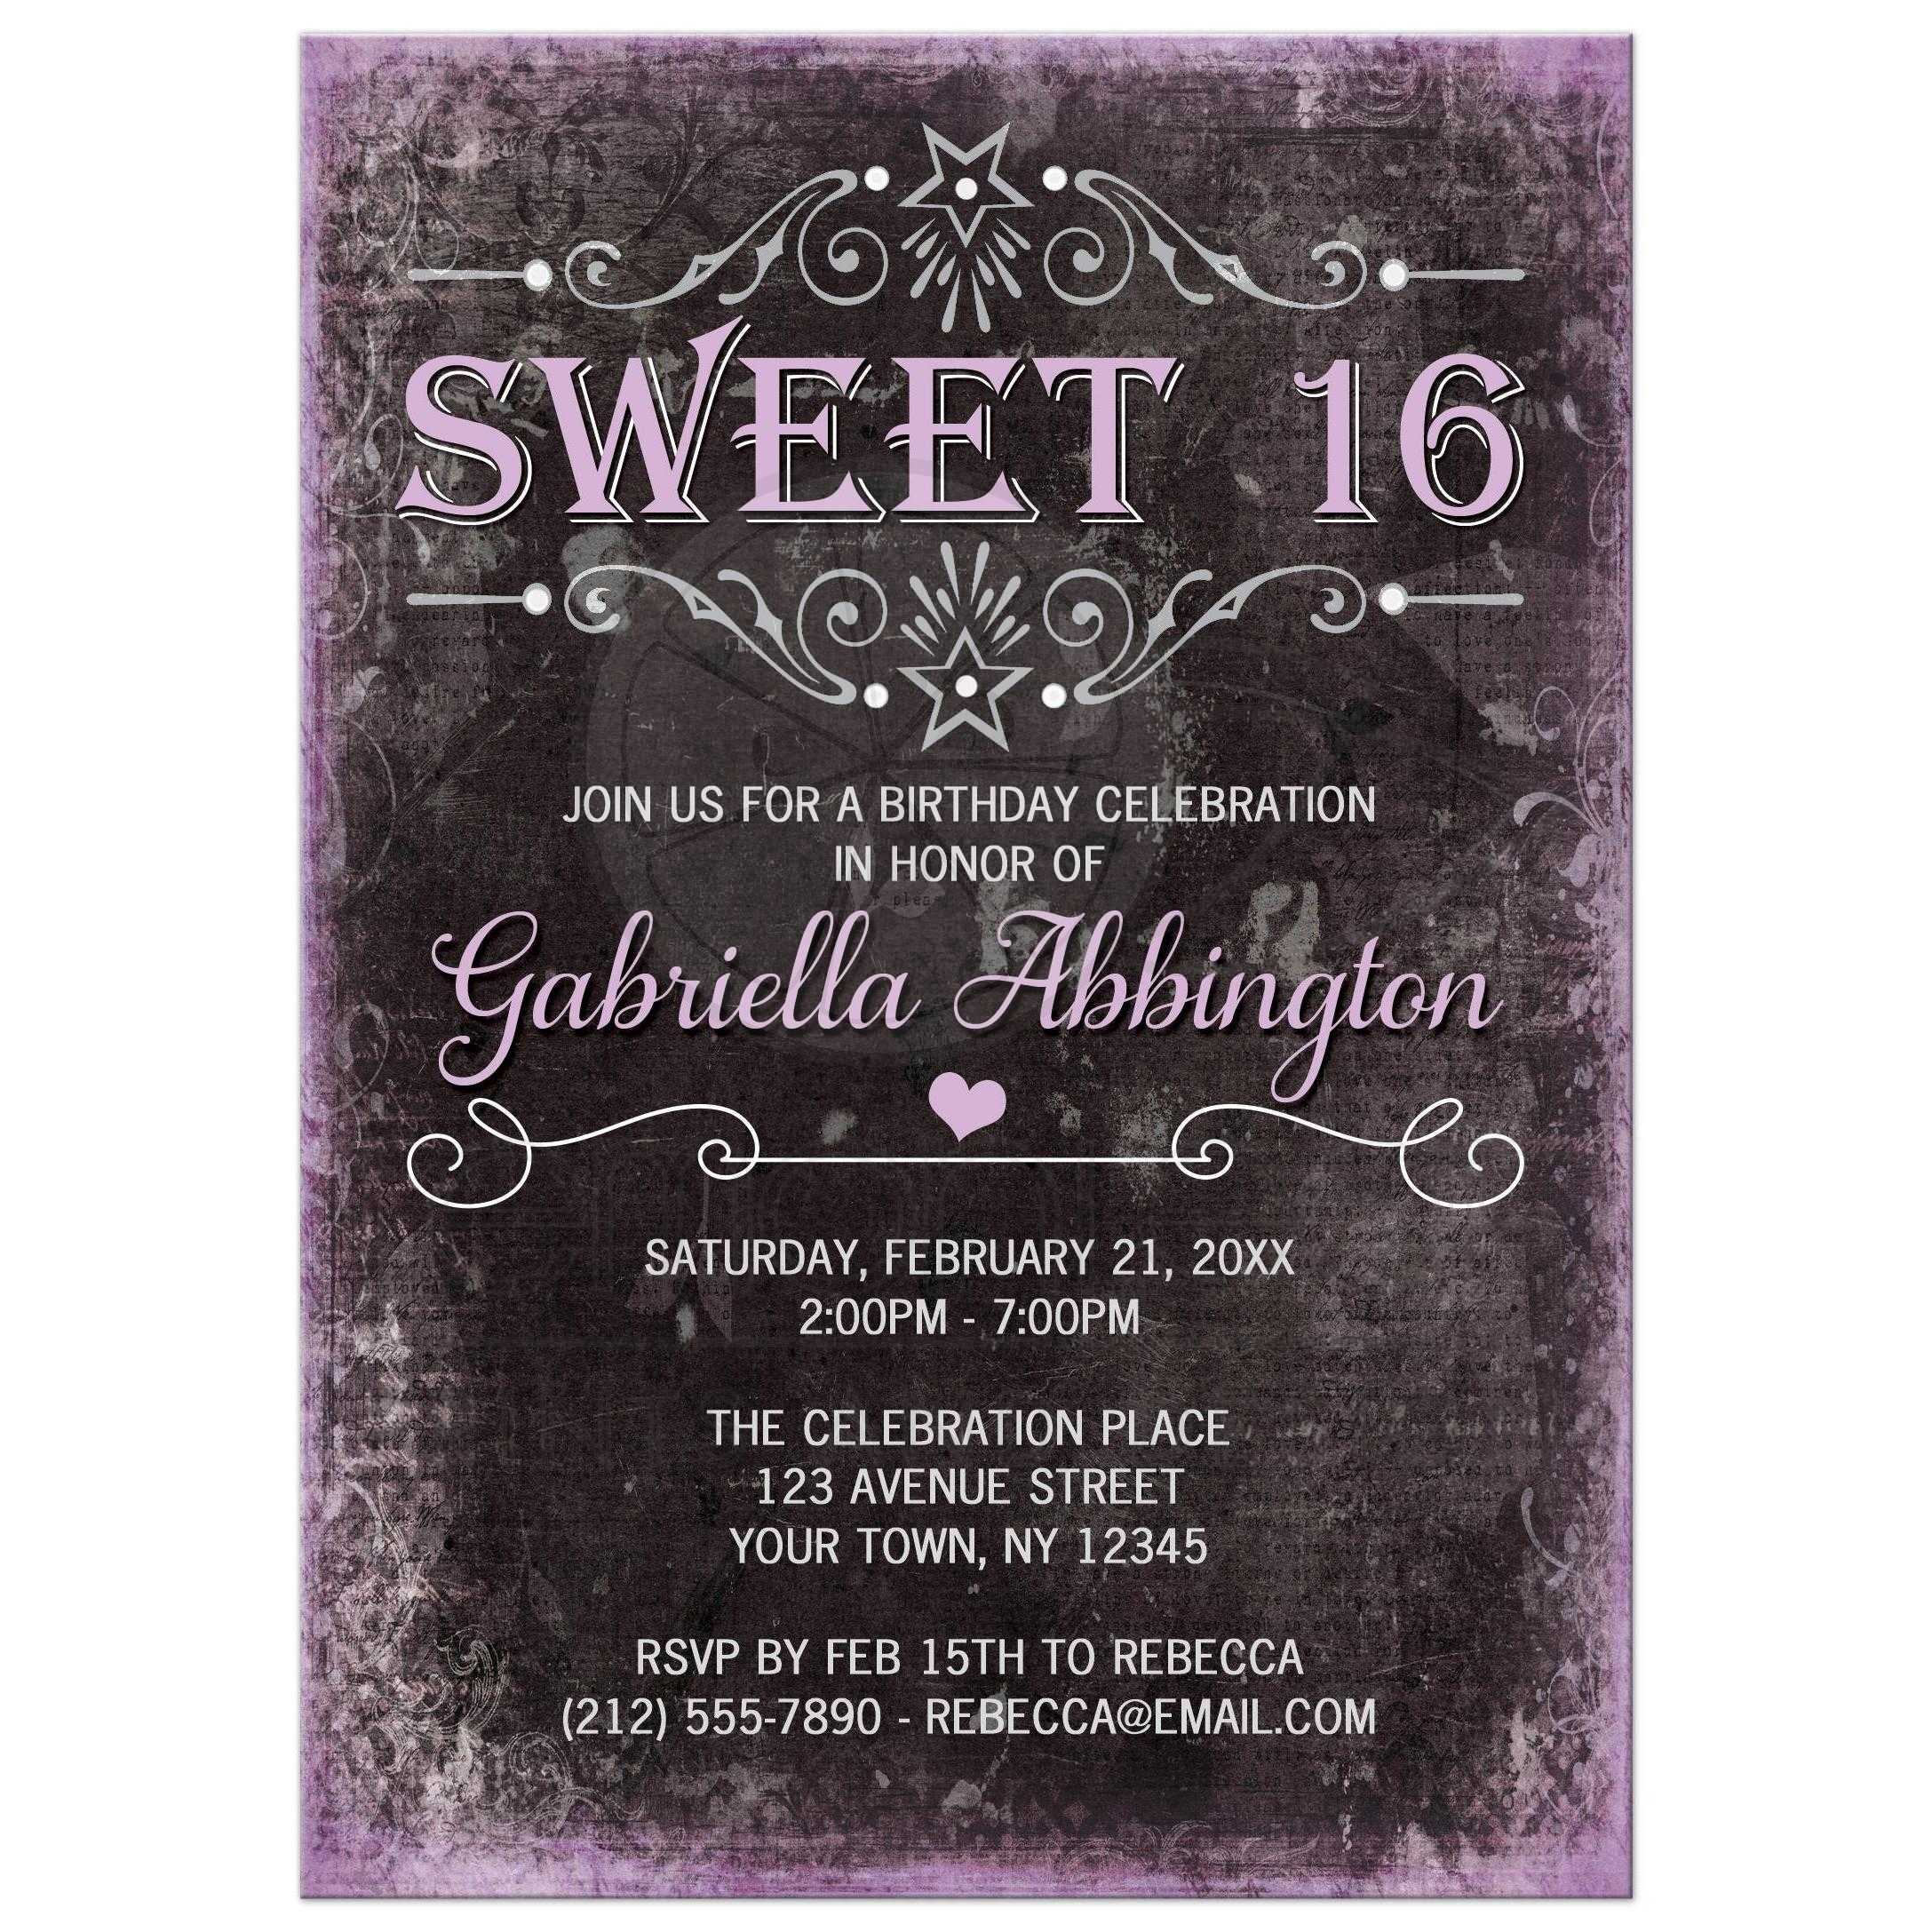 sweet 16 invitations black grunge purple